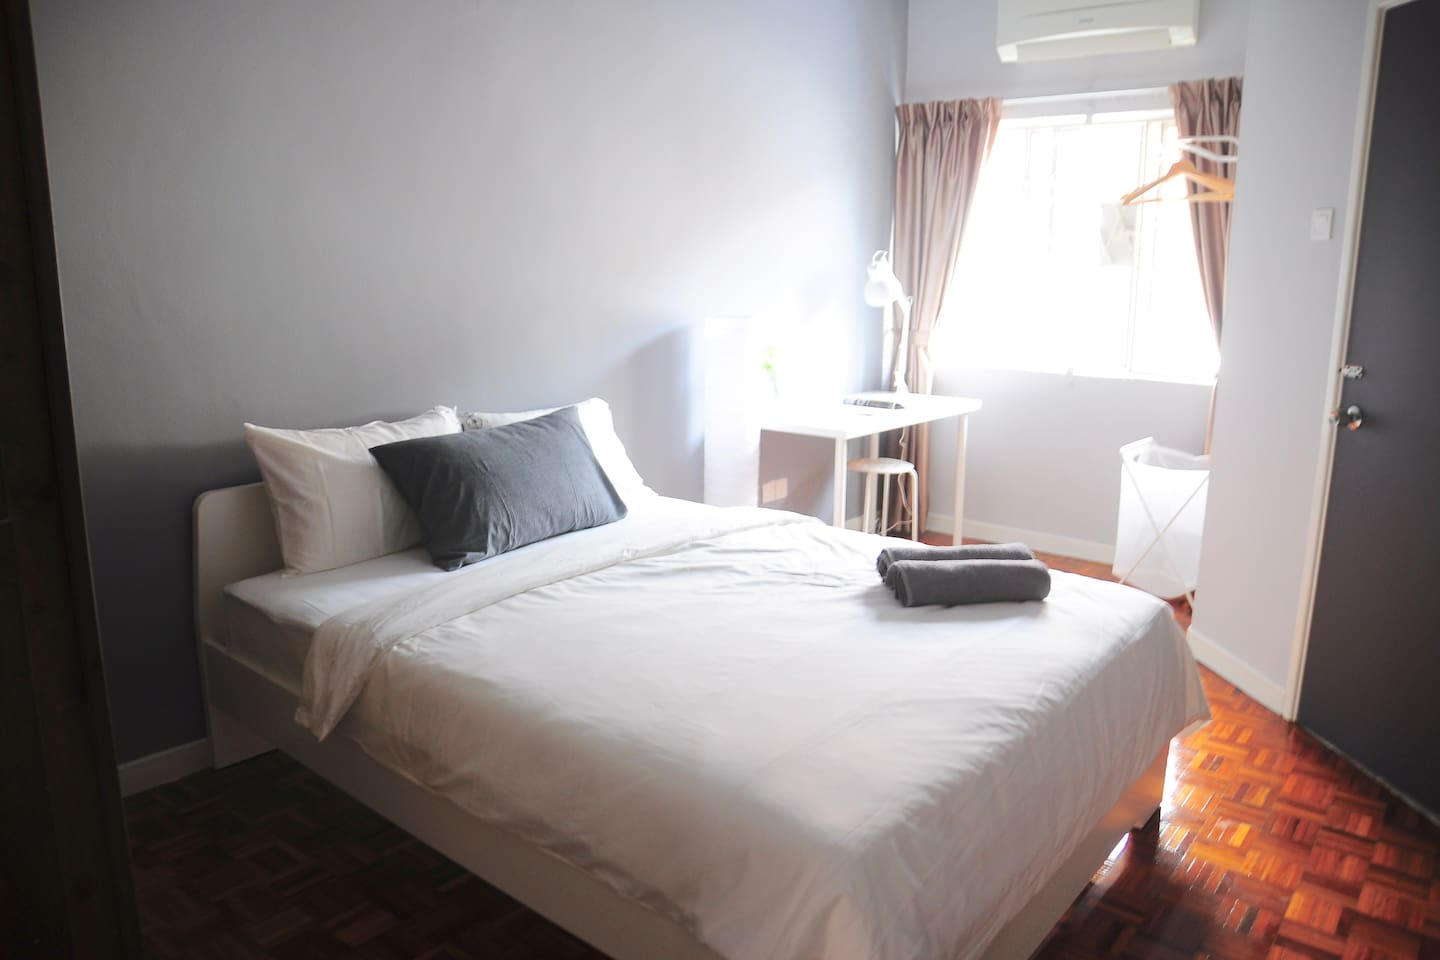 2nd Floor Standard Queen Room with 1 Queen Bed, Smart TV with 100+ Channels and Shared Attached Bathroom